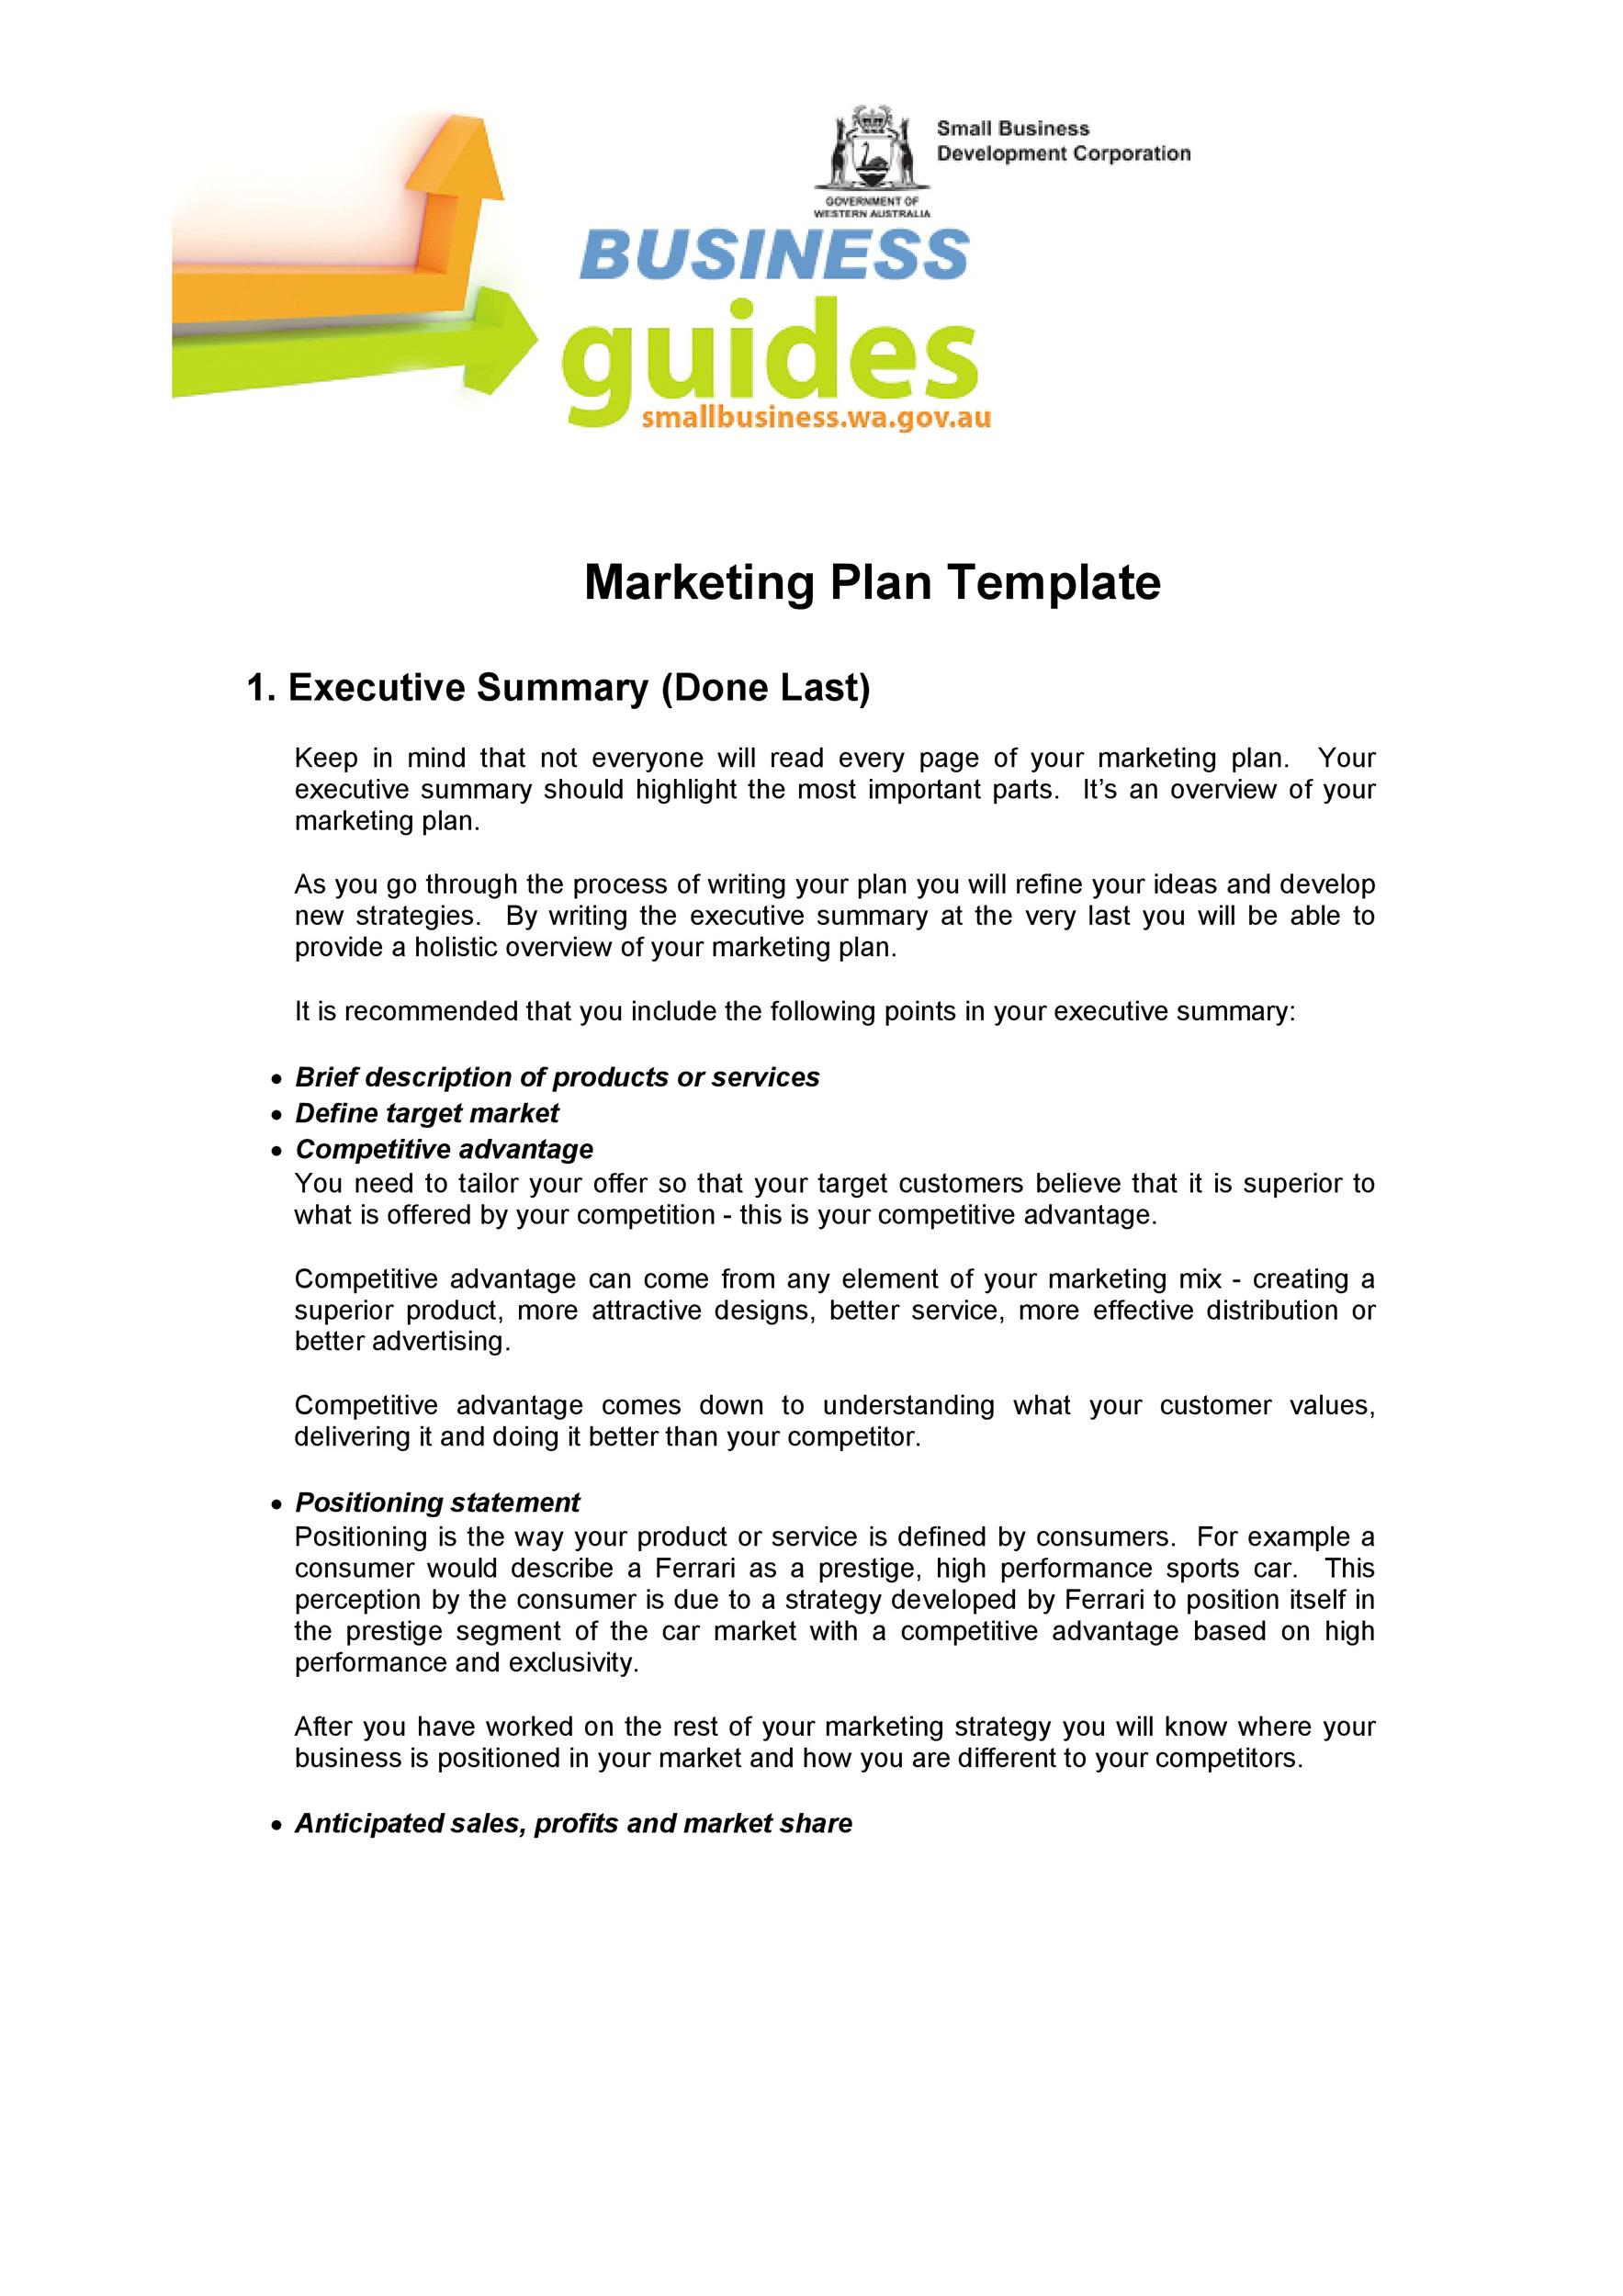 30 Professional Marketing Plan Templates Template Lab